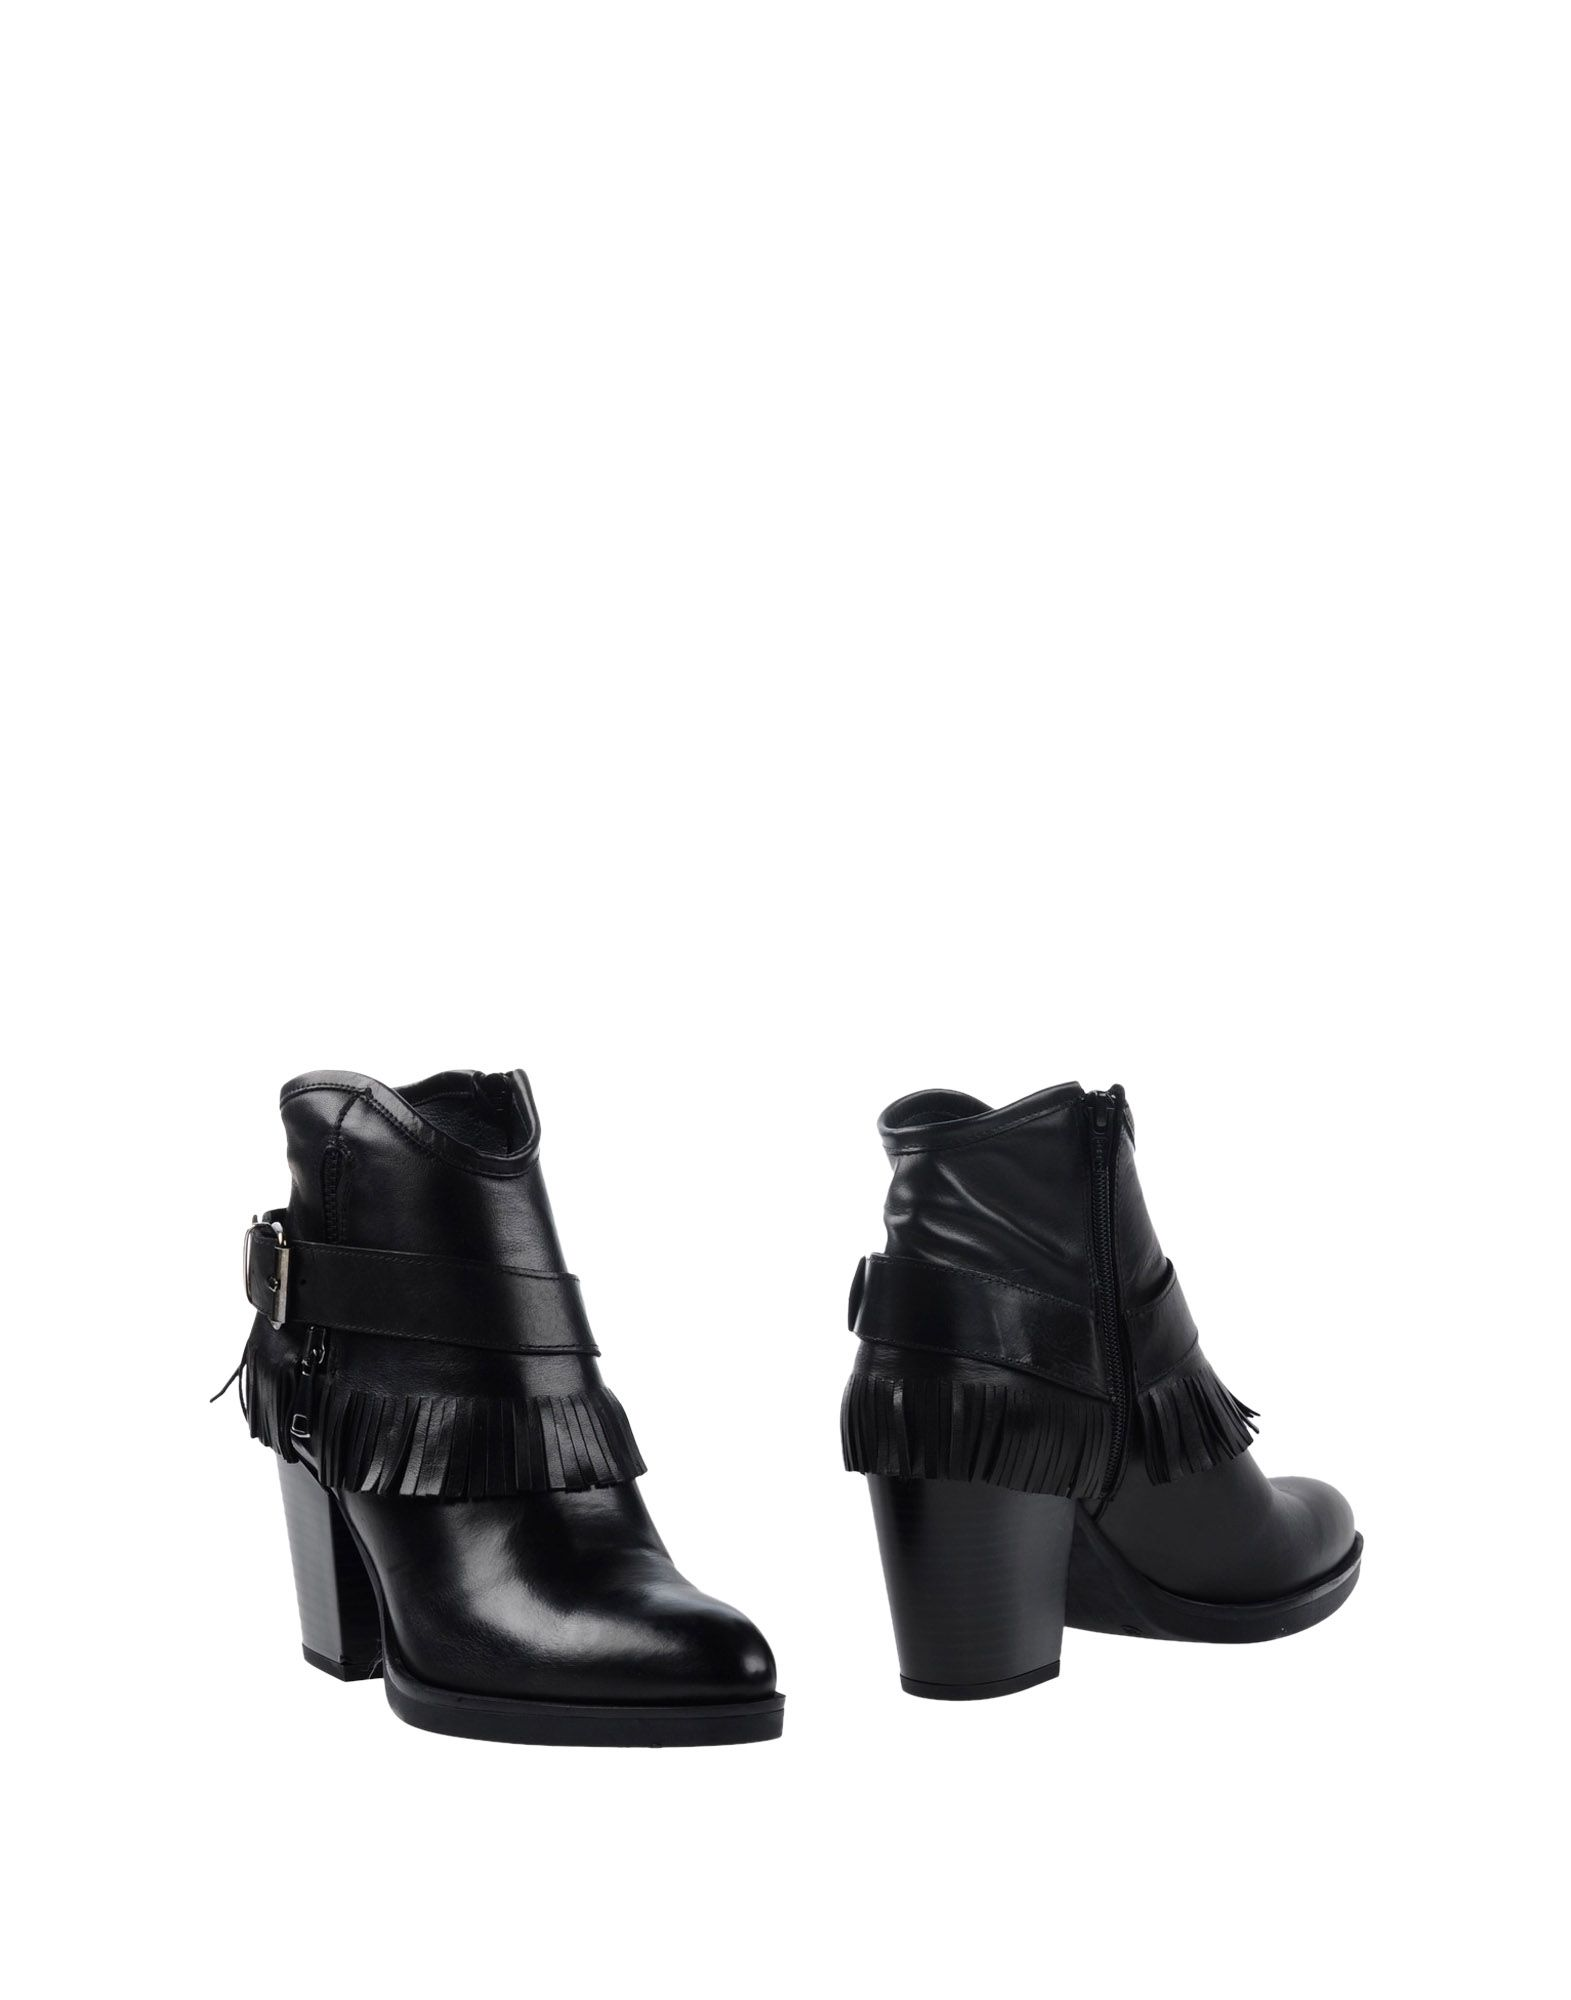 Nila & Nila Stiefelette Damen  11269389AT